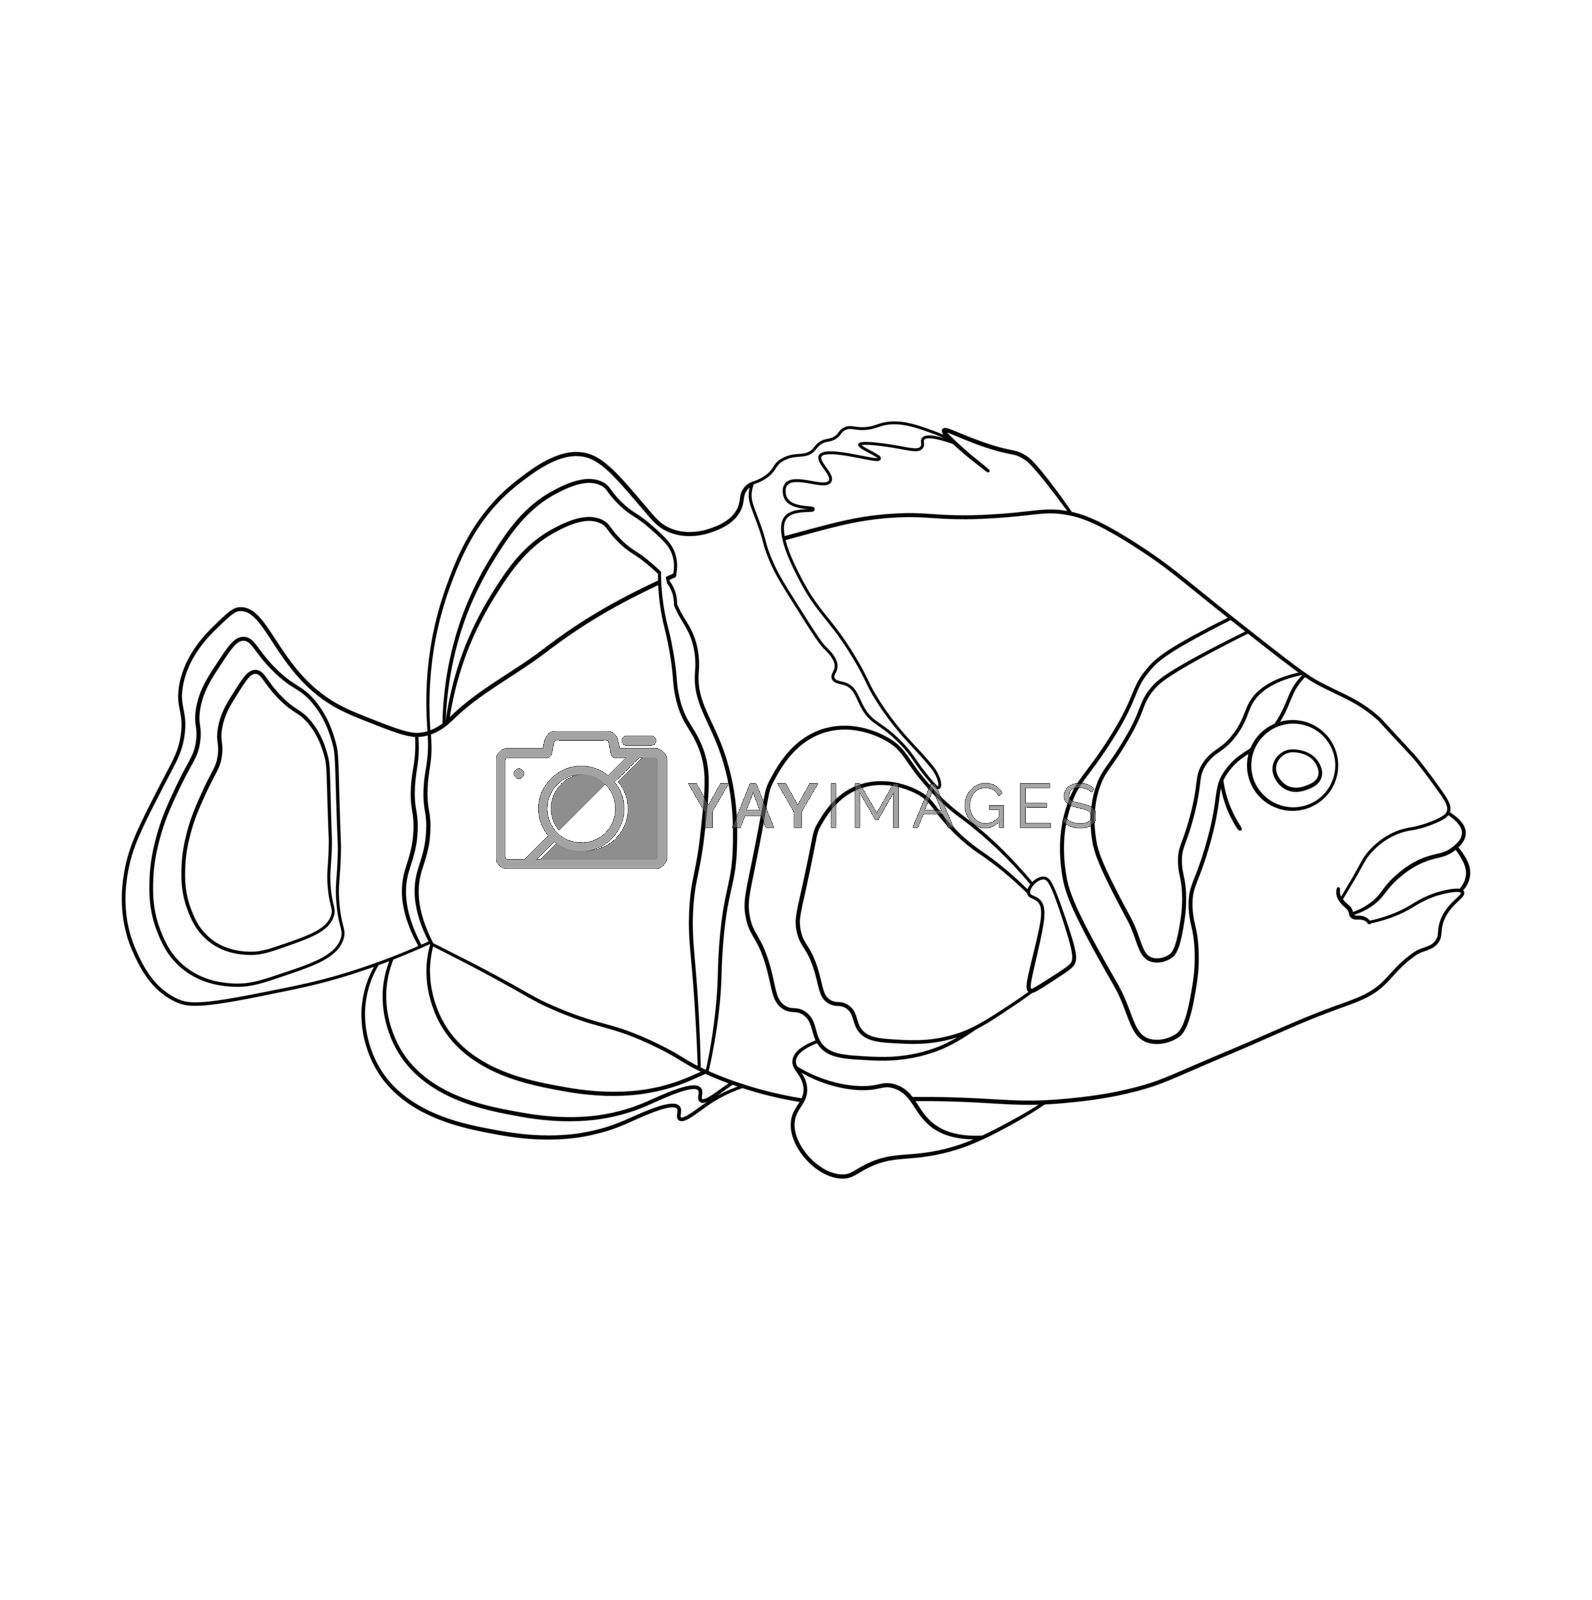 sea fish in linear for coloring page. Children drawing for coloring. Vector on white